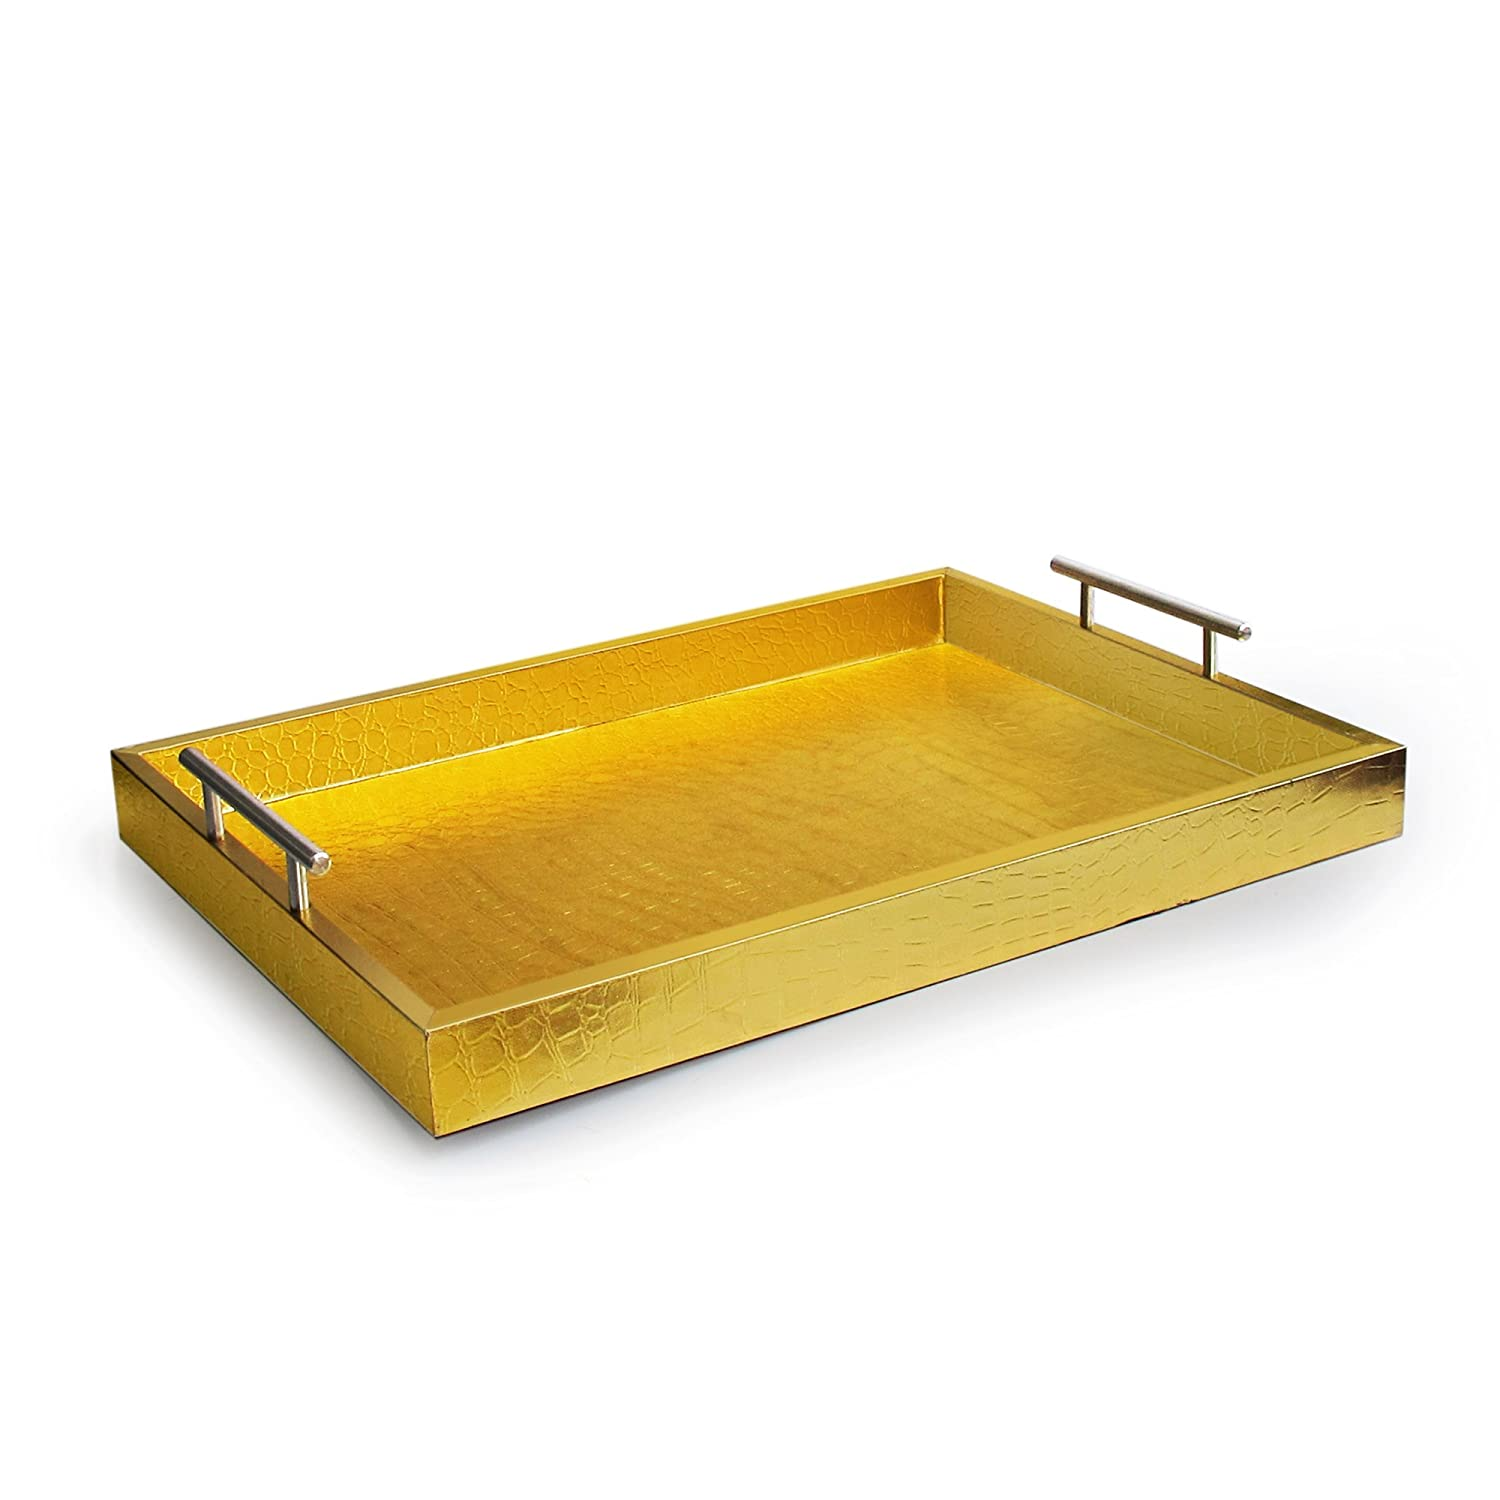 American Atelier Alligator Tray with Metal Handles, Gold Jay Imports 1270102